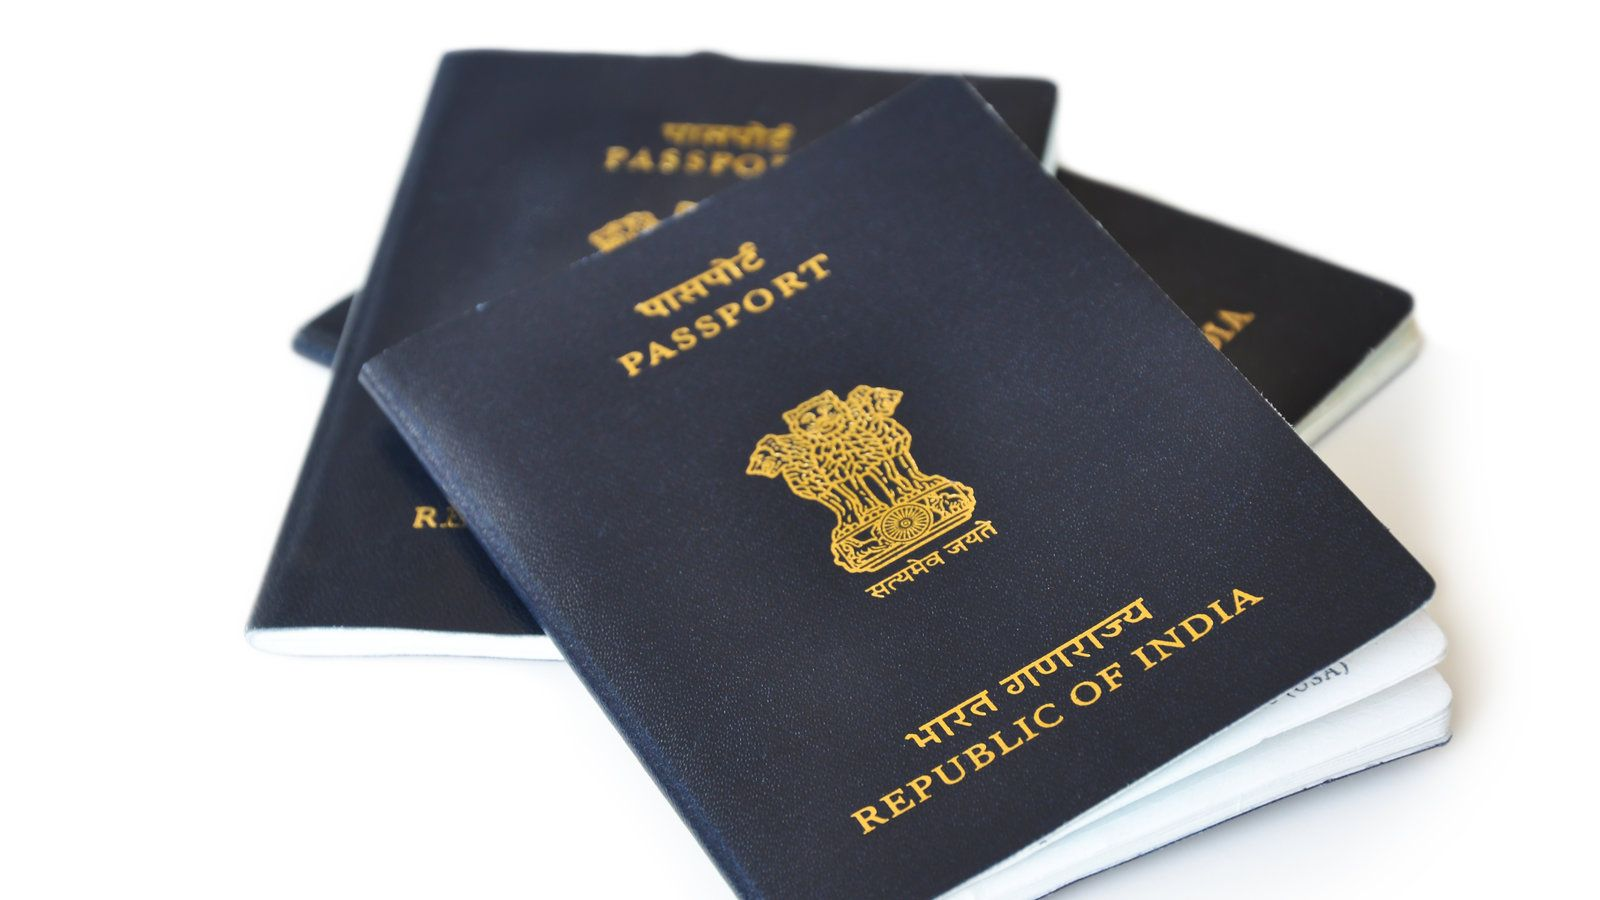 9a686b9e57b955493677ddc9ef9c3fca - How To Track Passport Application Status In Pakistan